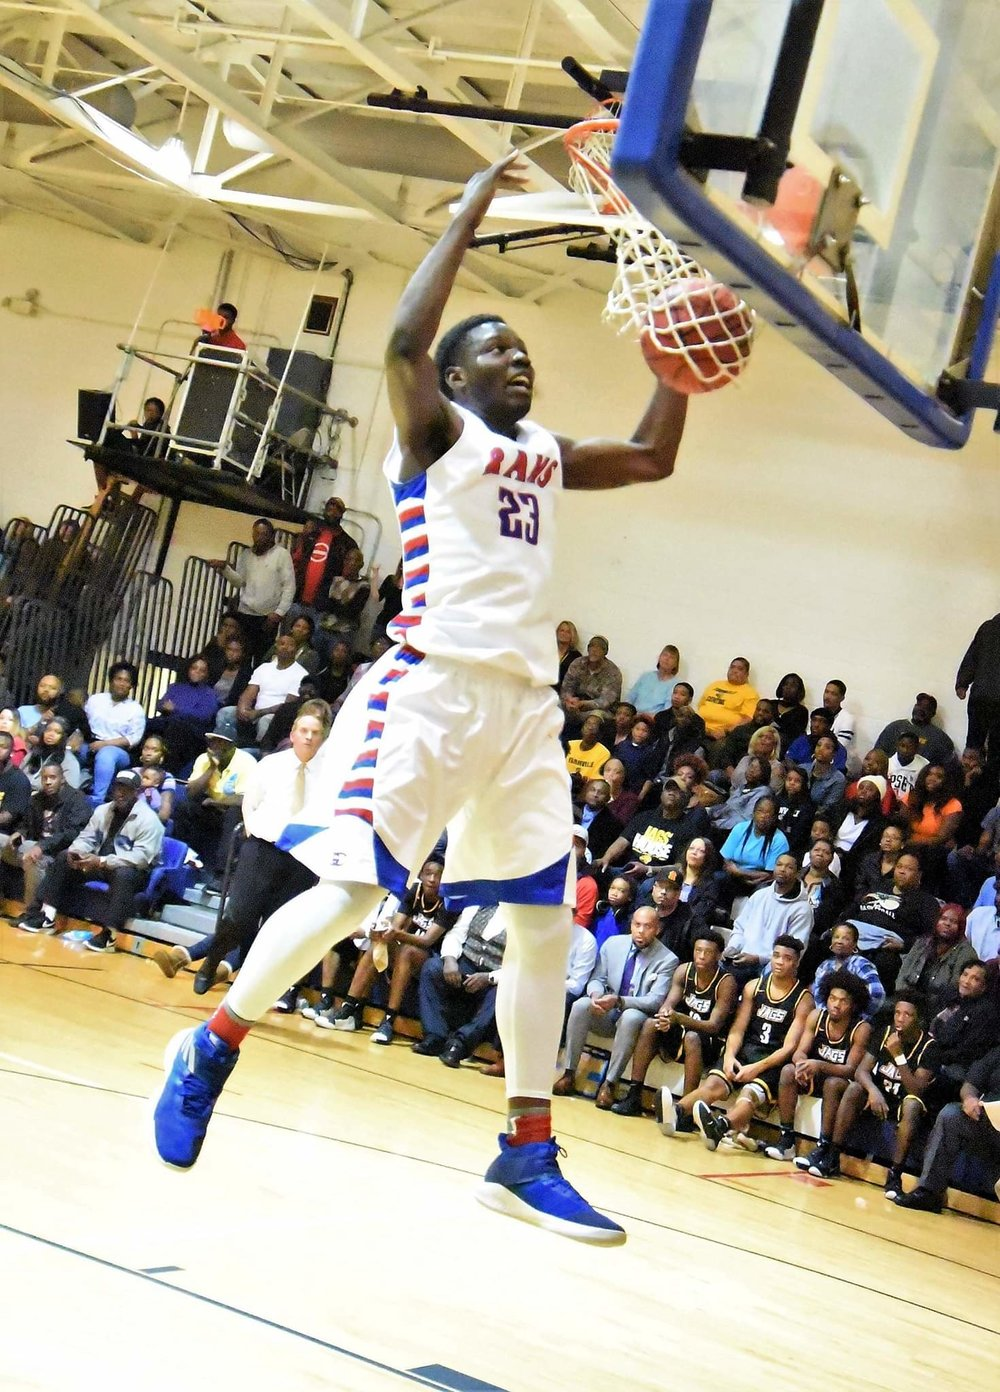 """Greene Central's Imajae Dodd slams home two of his game-high 19 points in Friday's game against Farmville Central. Photo by William """"Bud"""" Hardy / Neuse News"""